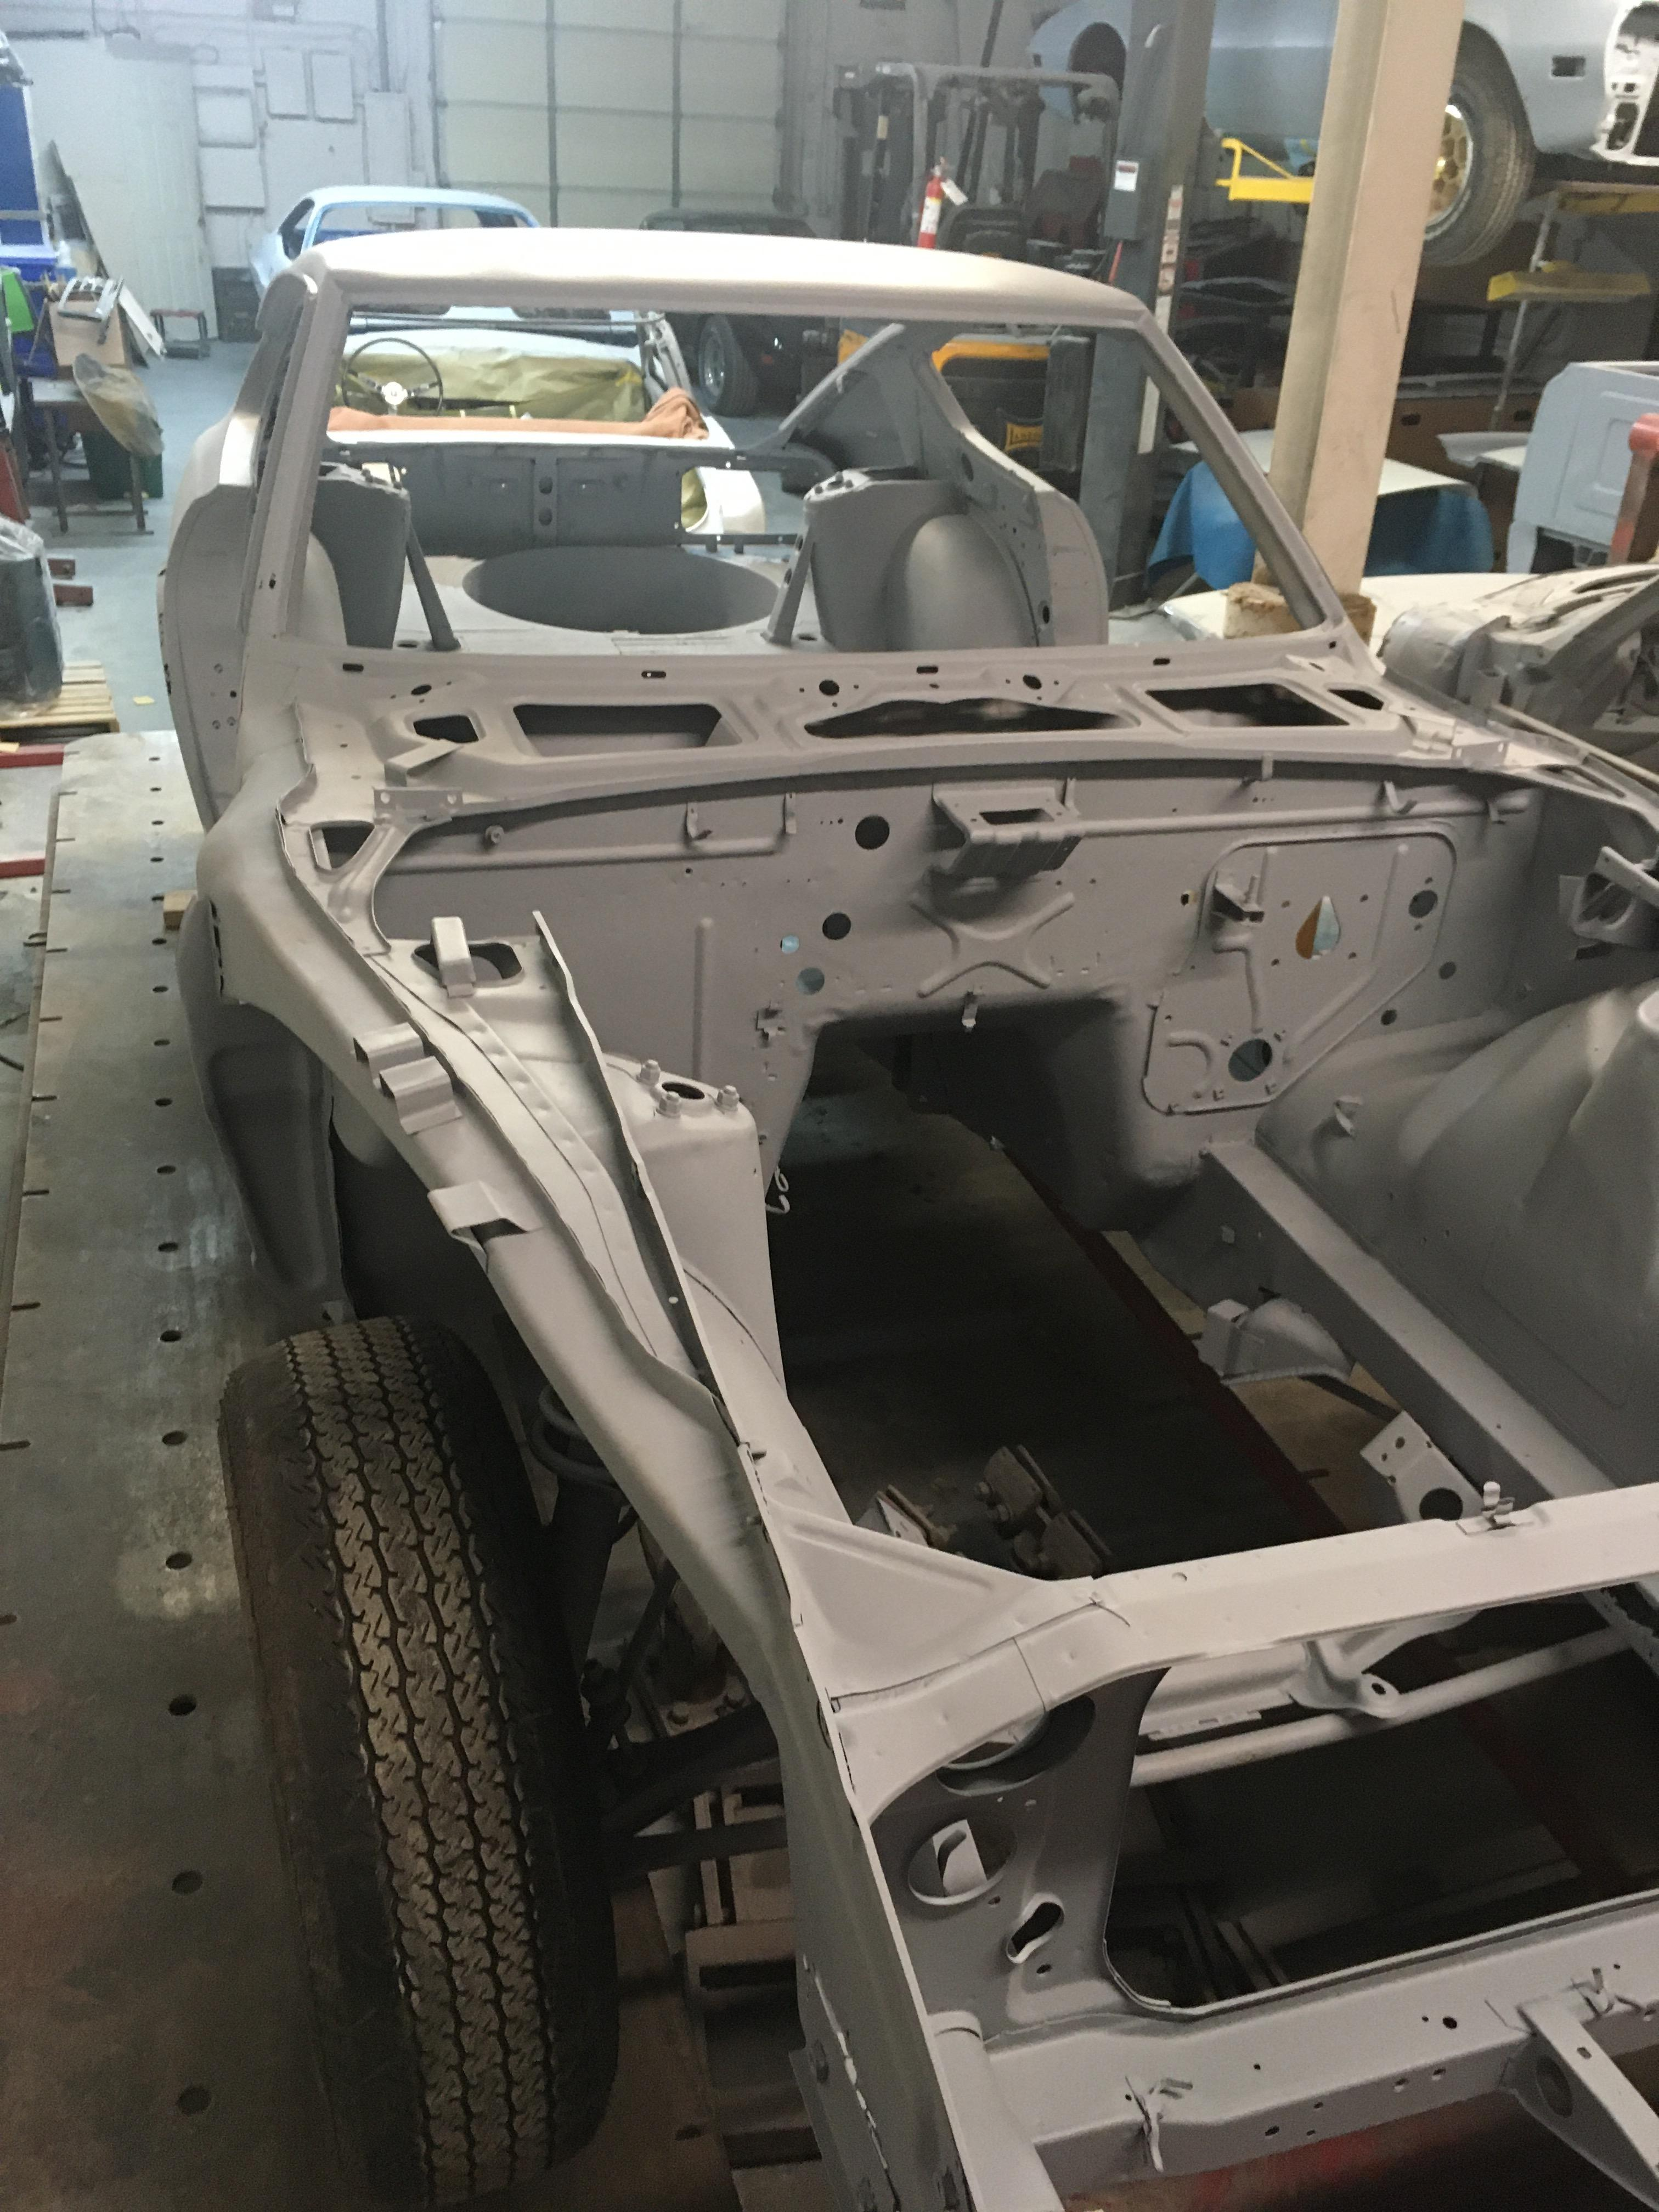 1973 240Z Project For Sale - Media blasted and ready for repair and assembly